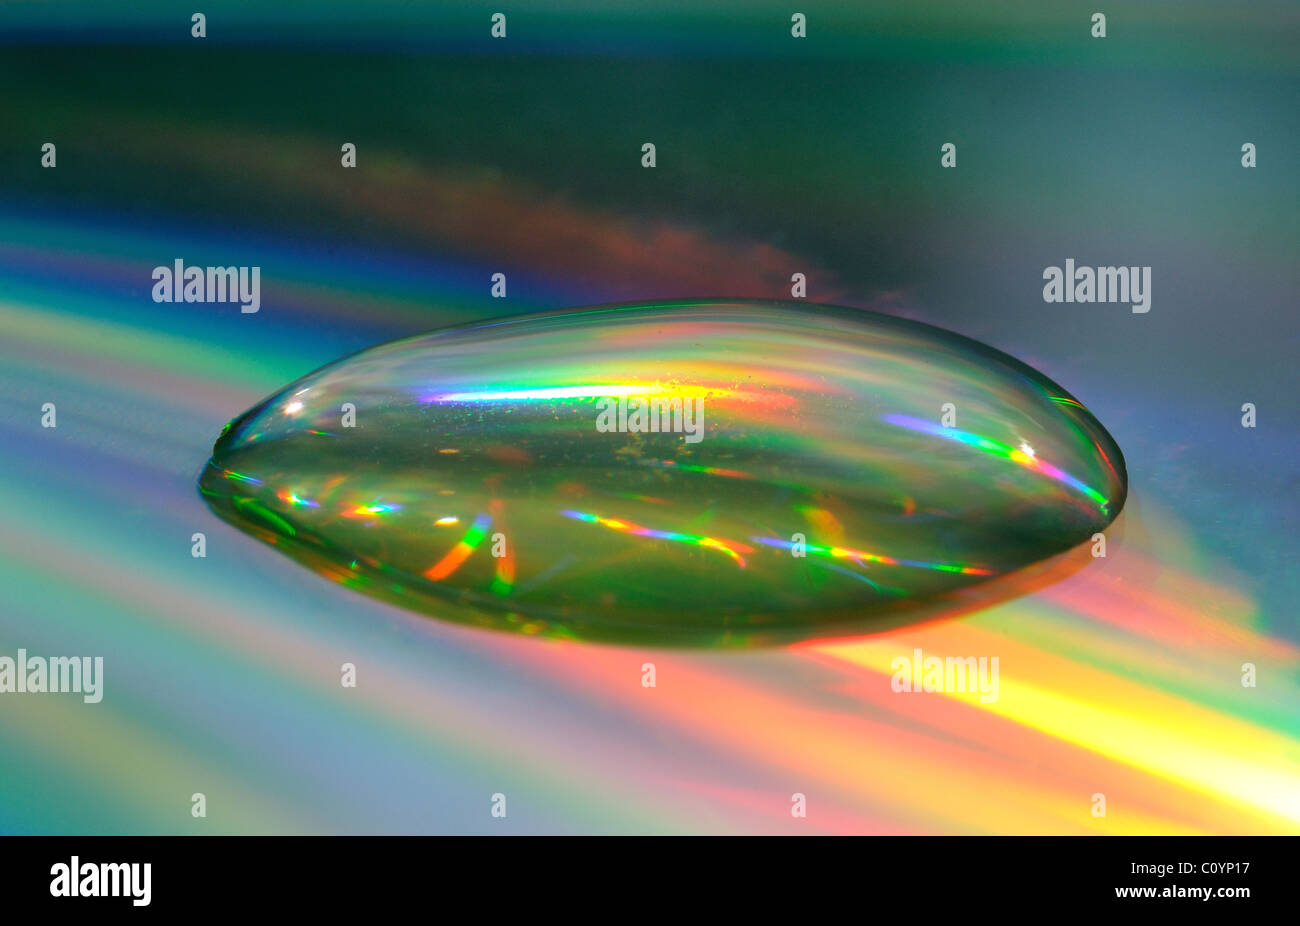 Water bubble showing refracted light - Stock Image